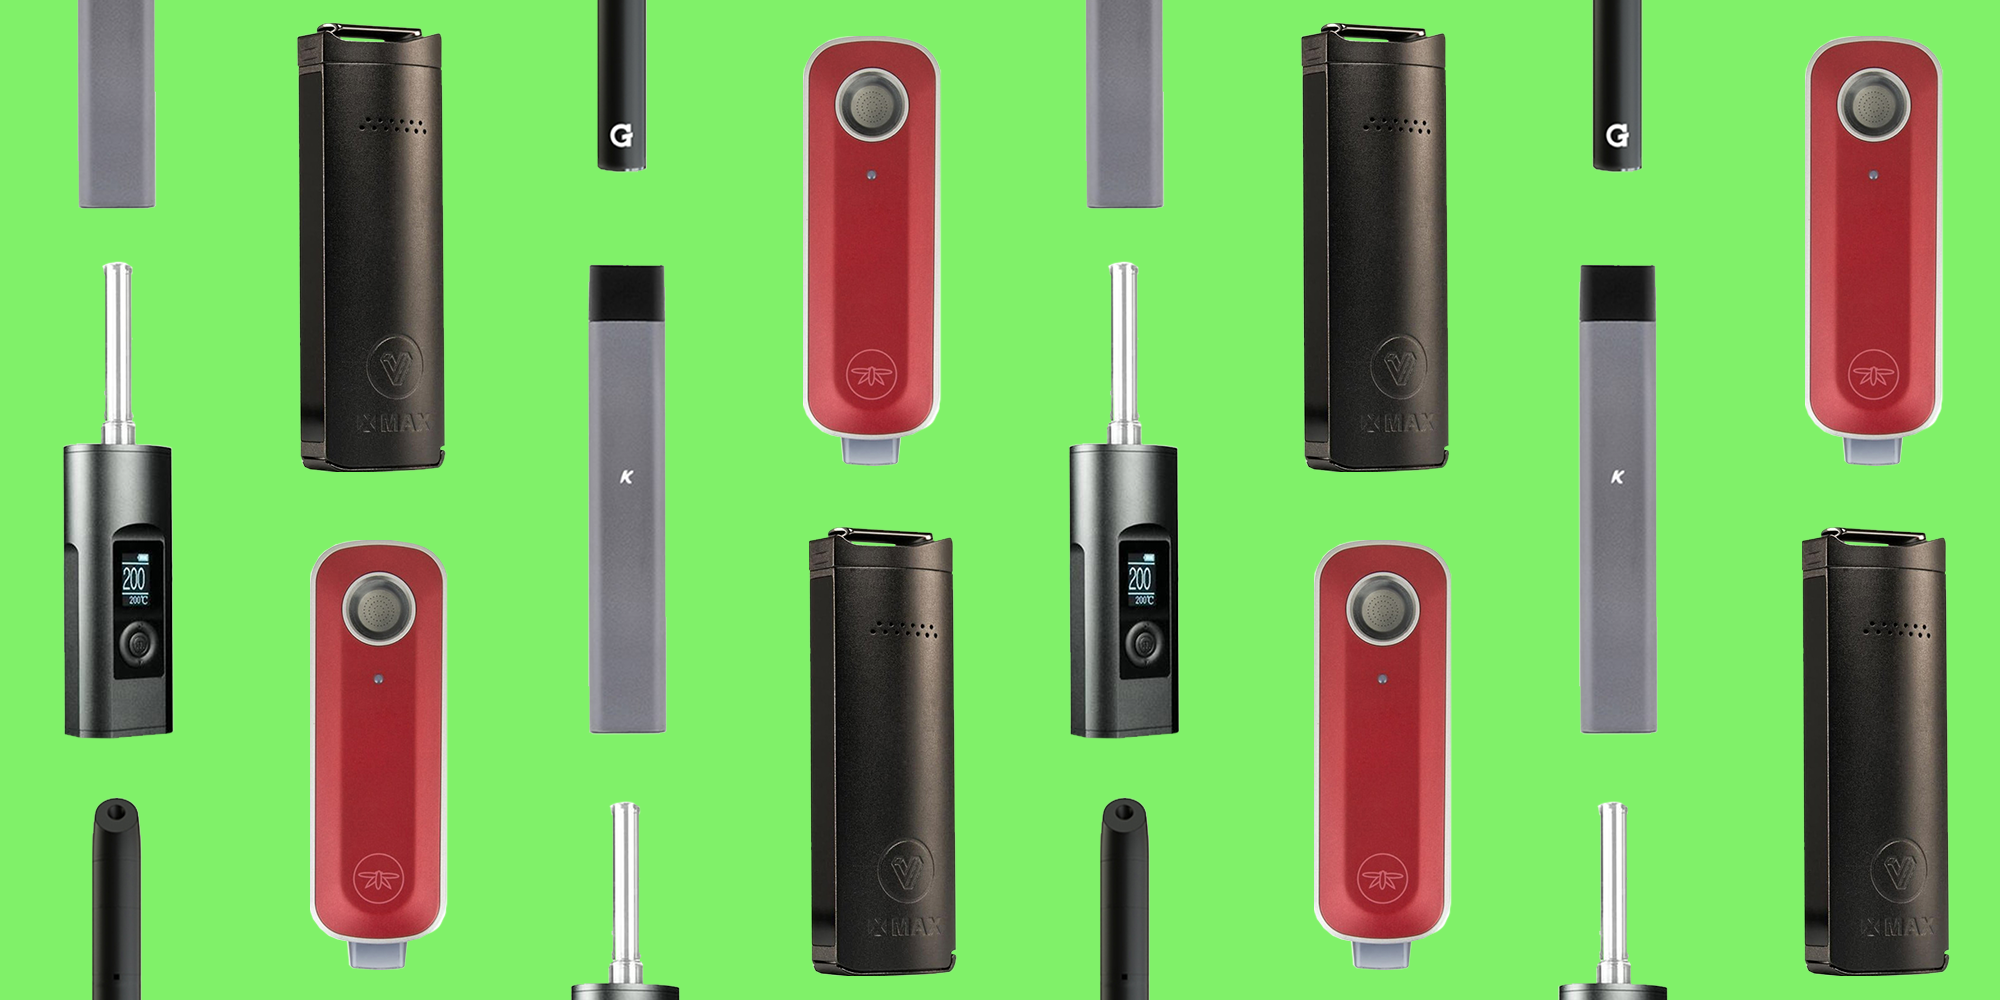 10 Best Weed Vaporizers 2019 - Top Marijuana Vapes to Buy Right Now